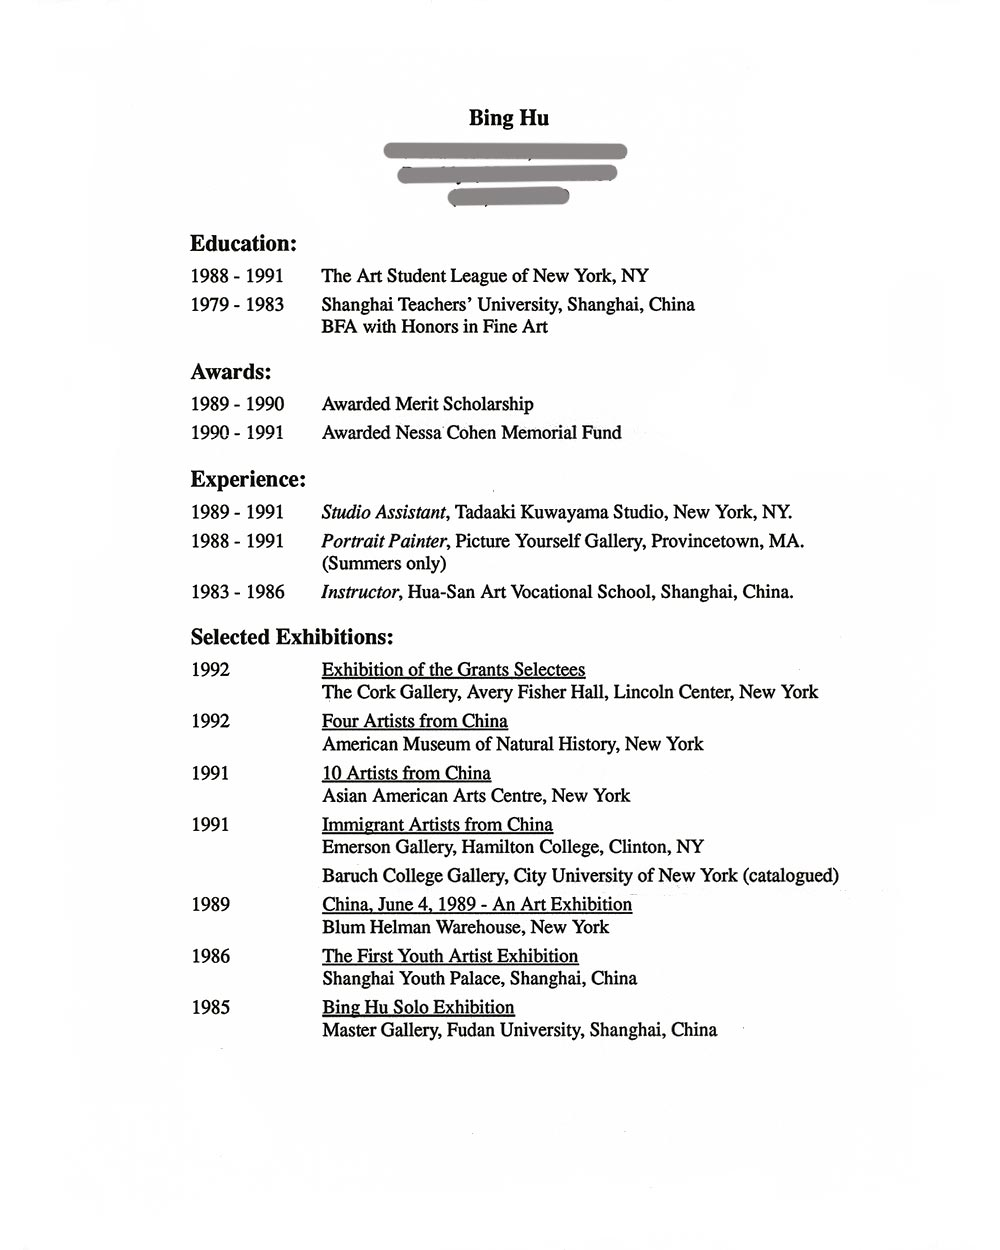 Hu, Bing - Selected Document - artasiamerica - A Digital Archive for ...